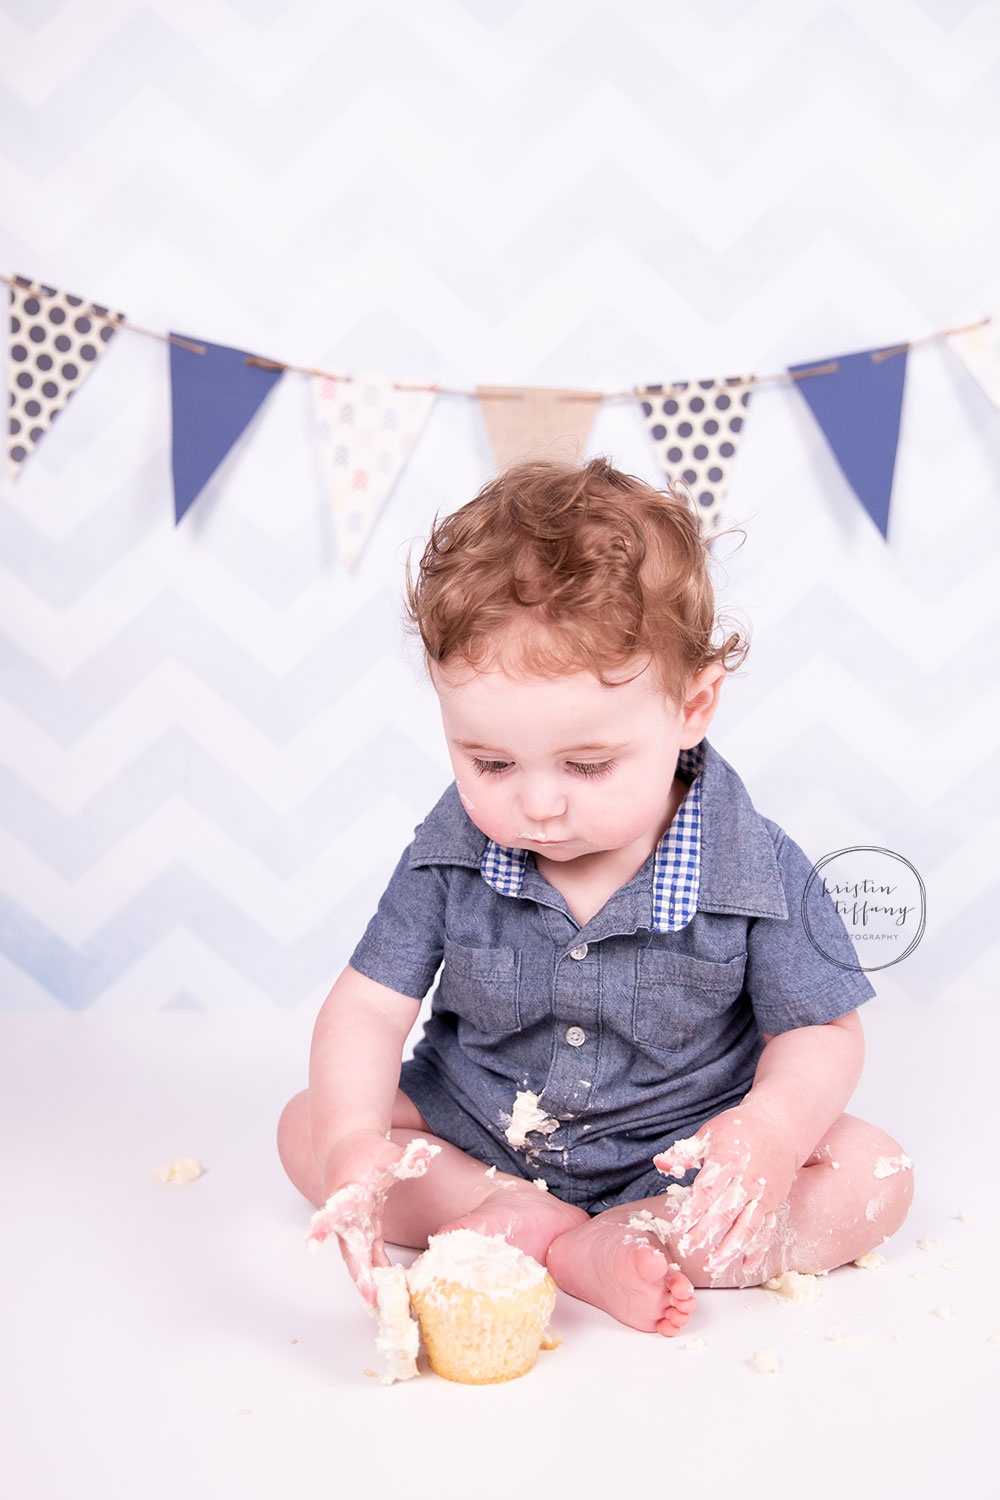 a photo of a baby smashing a cupcake